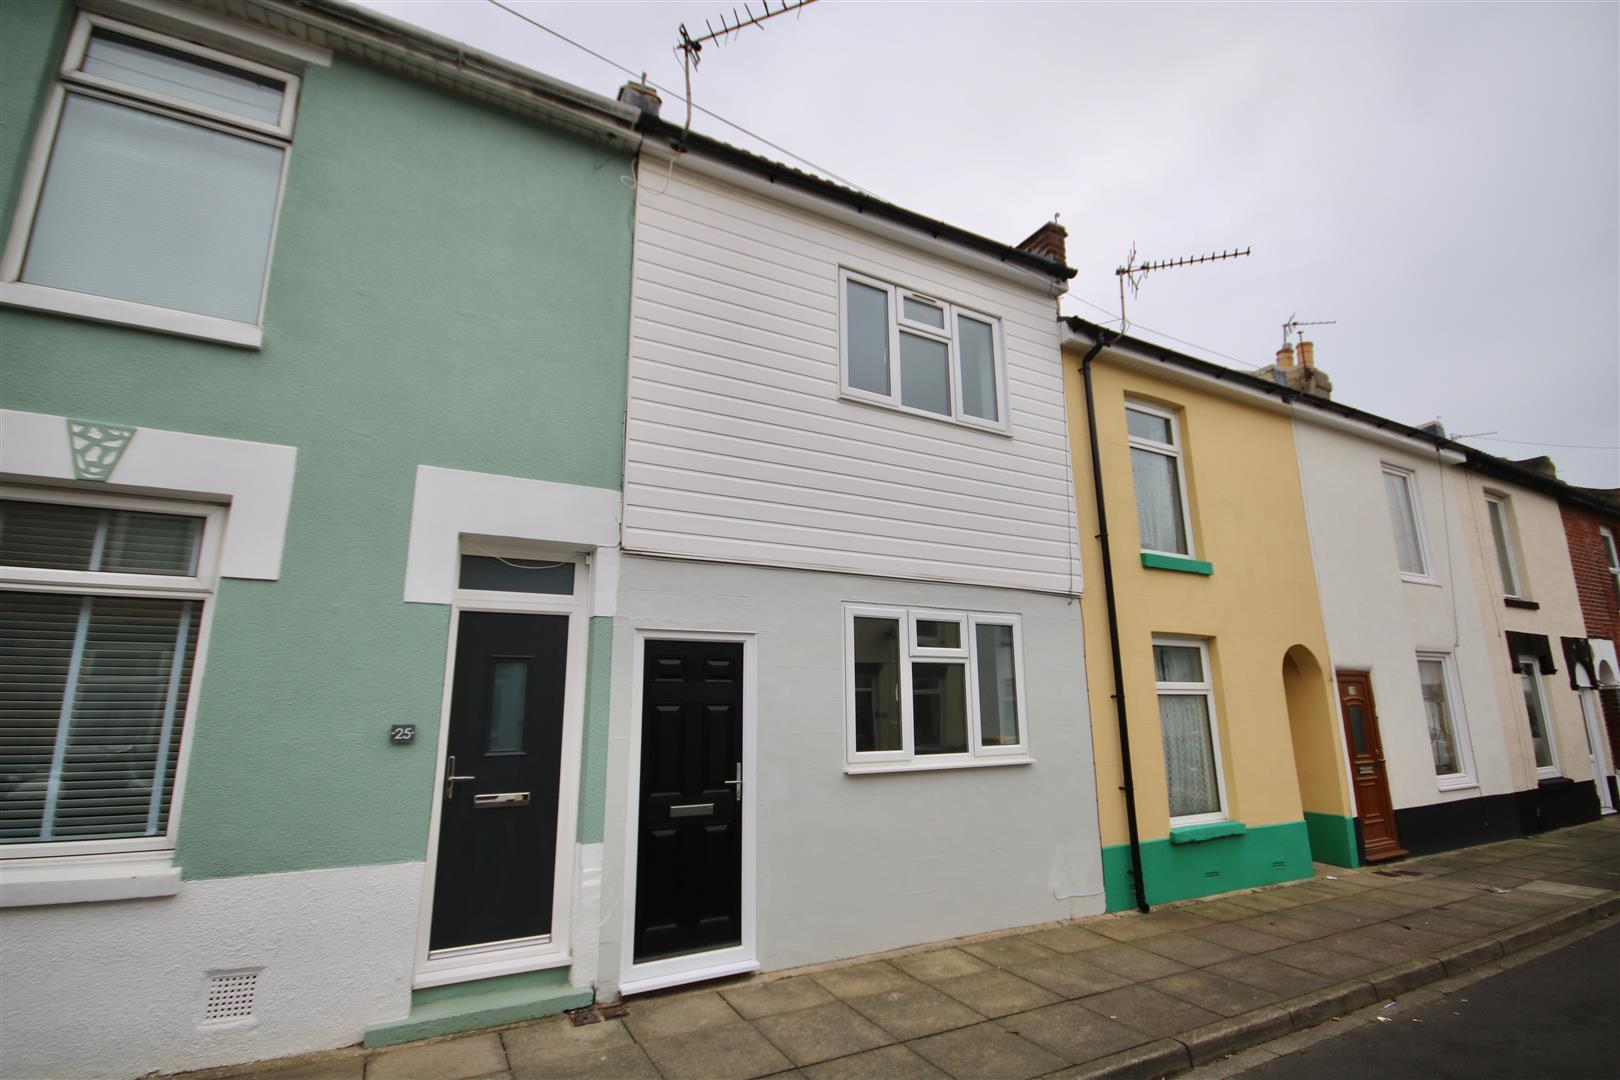 2 Bedrooms Terraced House for sale in Wainscott Road, SOUTHSEA, Portsmouth, Hampshire